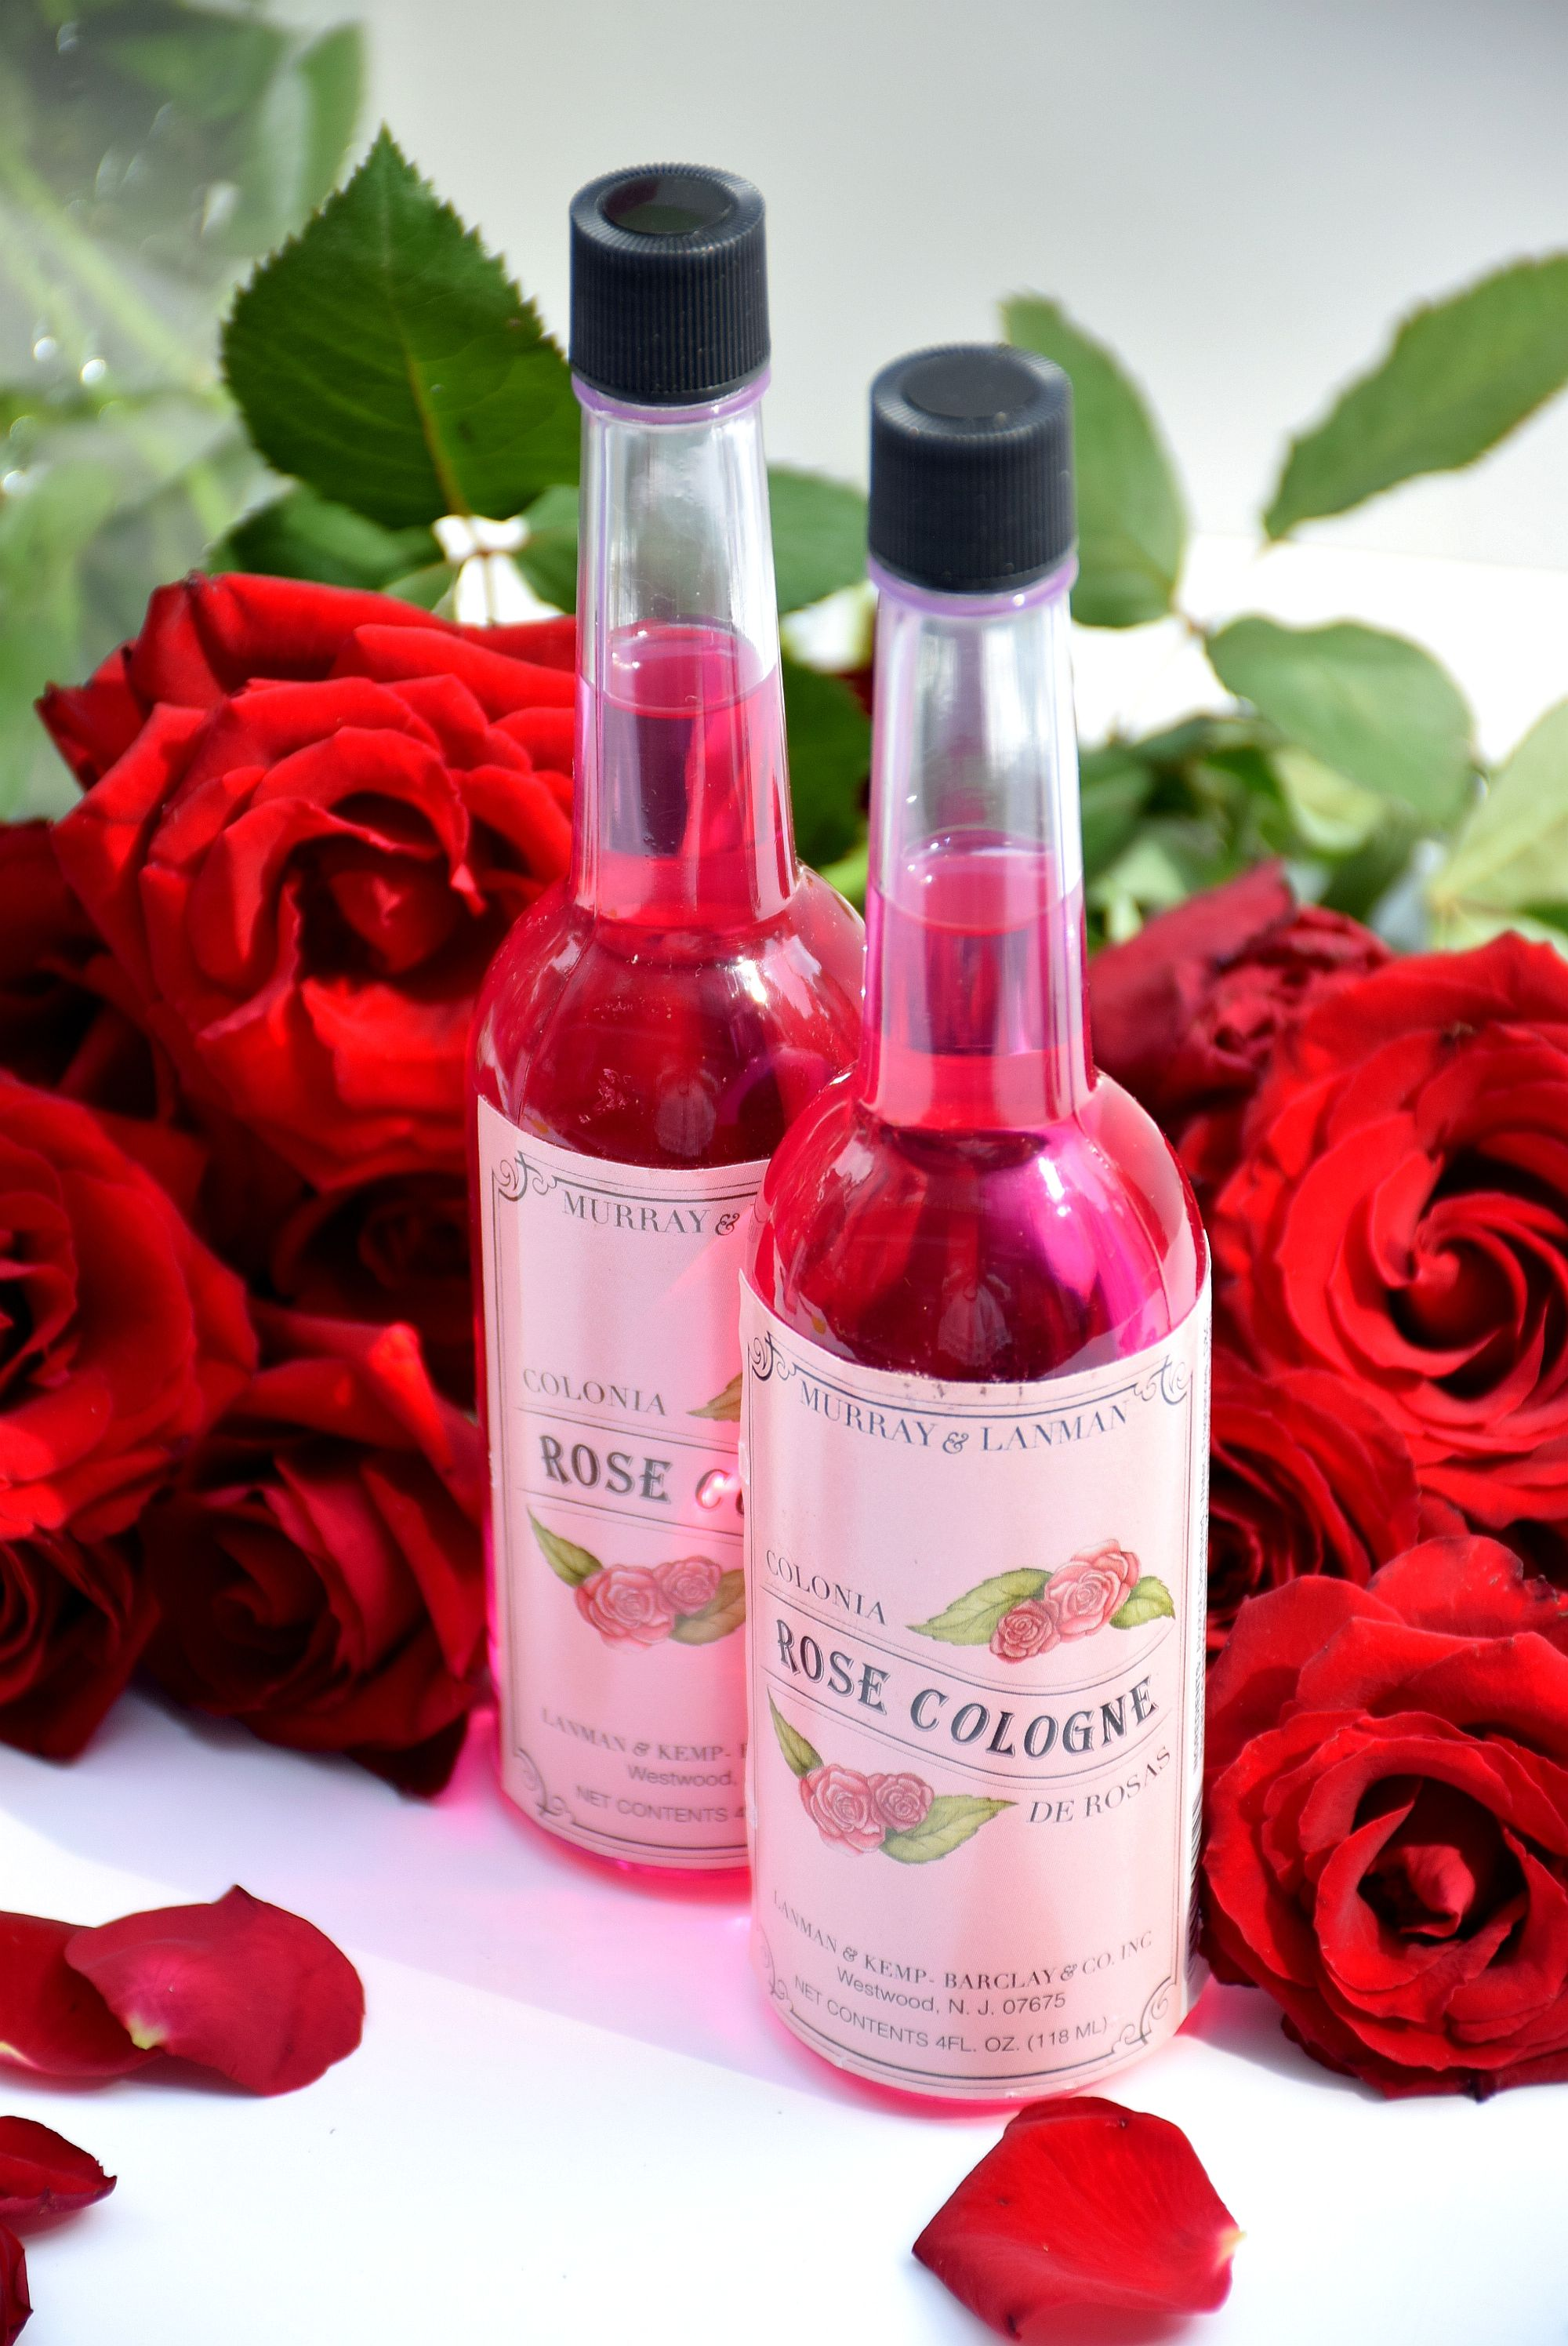 Pin By Florida Water Cologne By Murra On Cologne Rose Wine Bottle Cologne Bottle